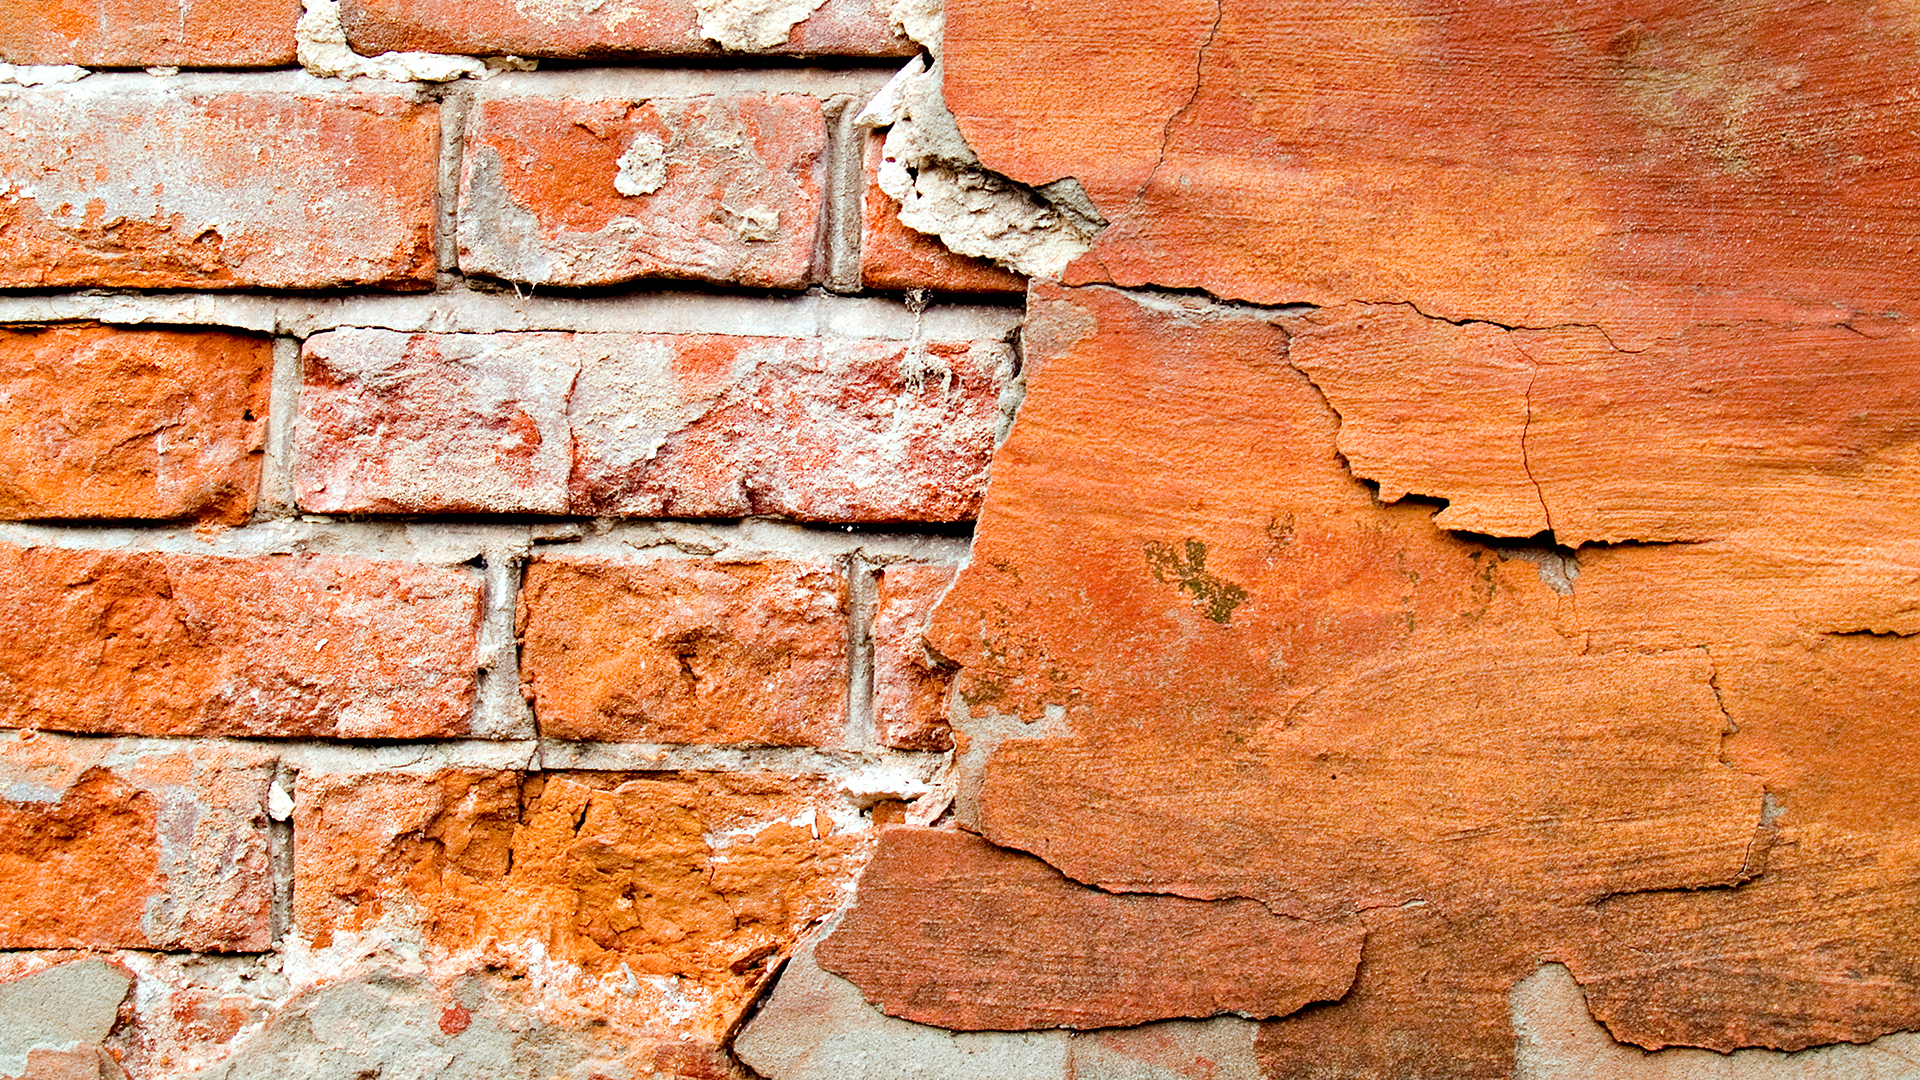 old brick wall, bricks, background, texture, download photo, stucco